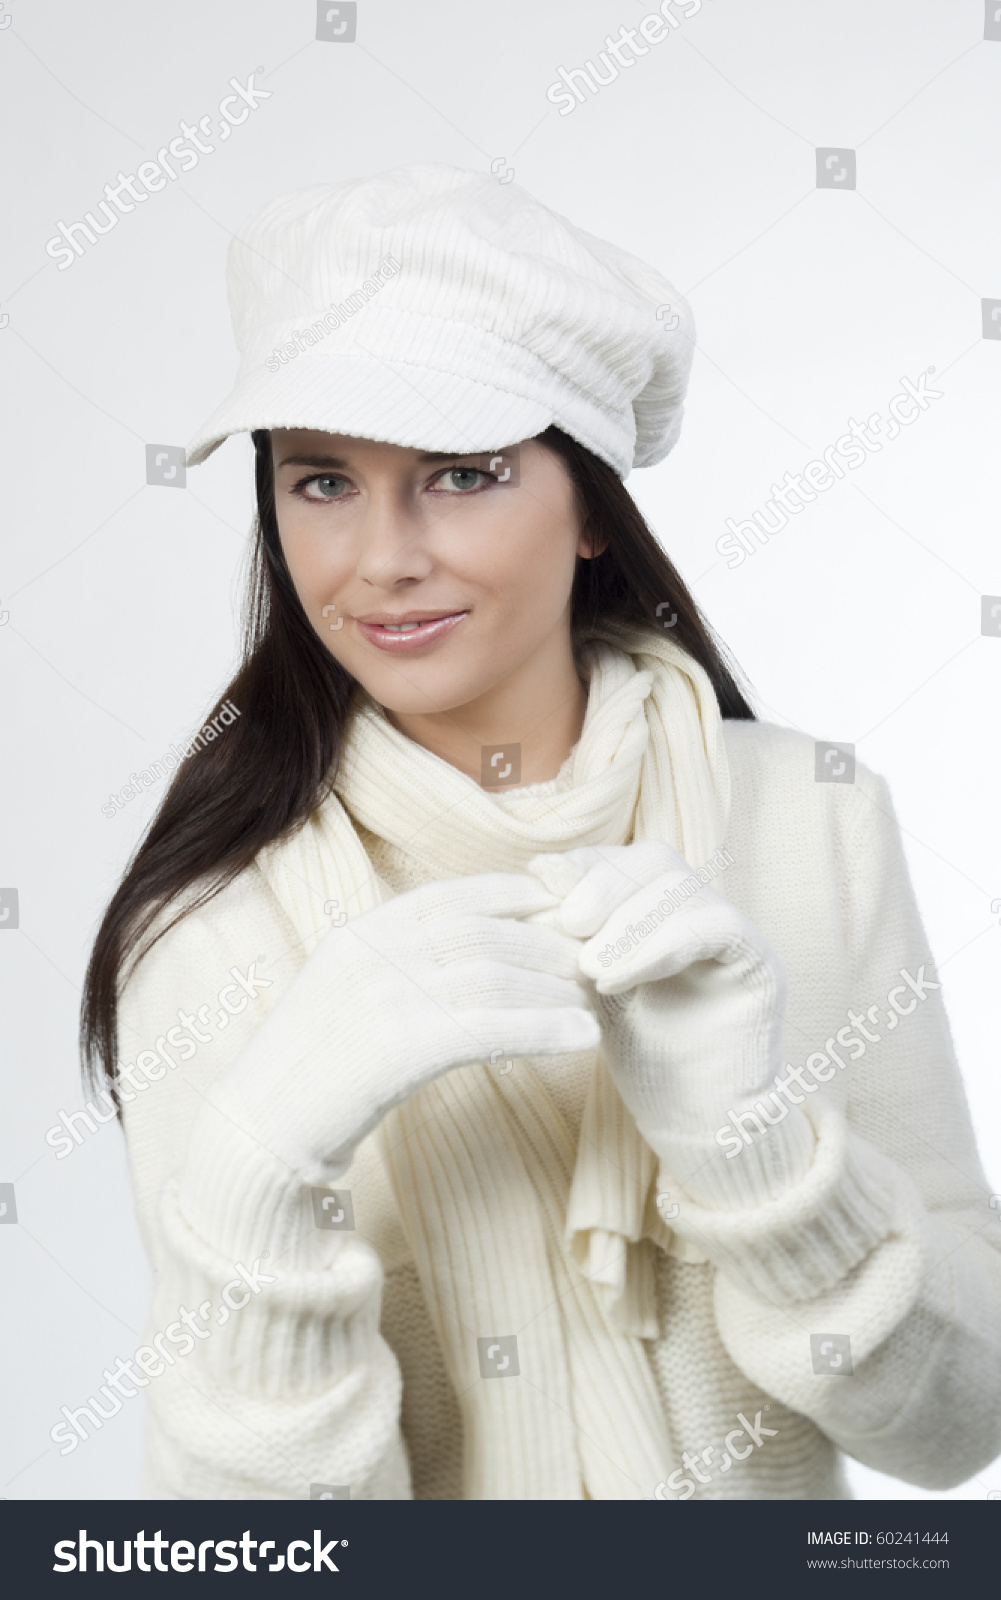 Young Woman Soft White Sweater Cap Stock Photo 60241444 - Shutterstock